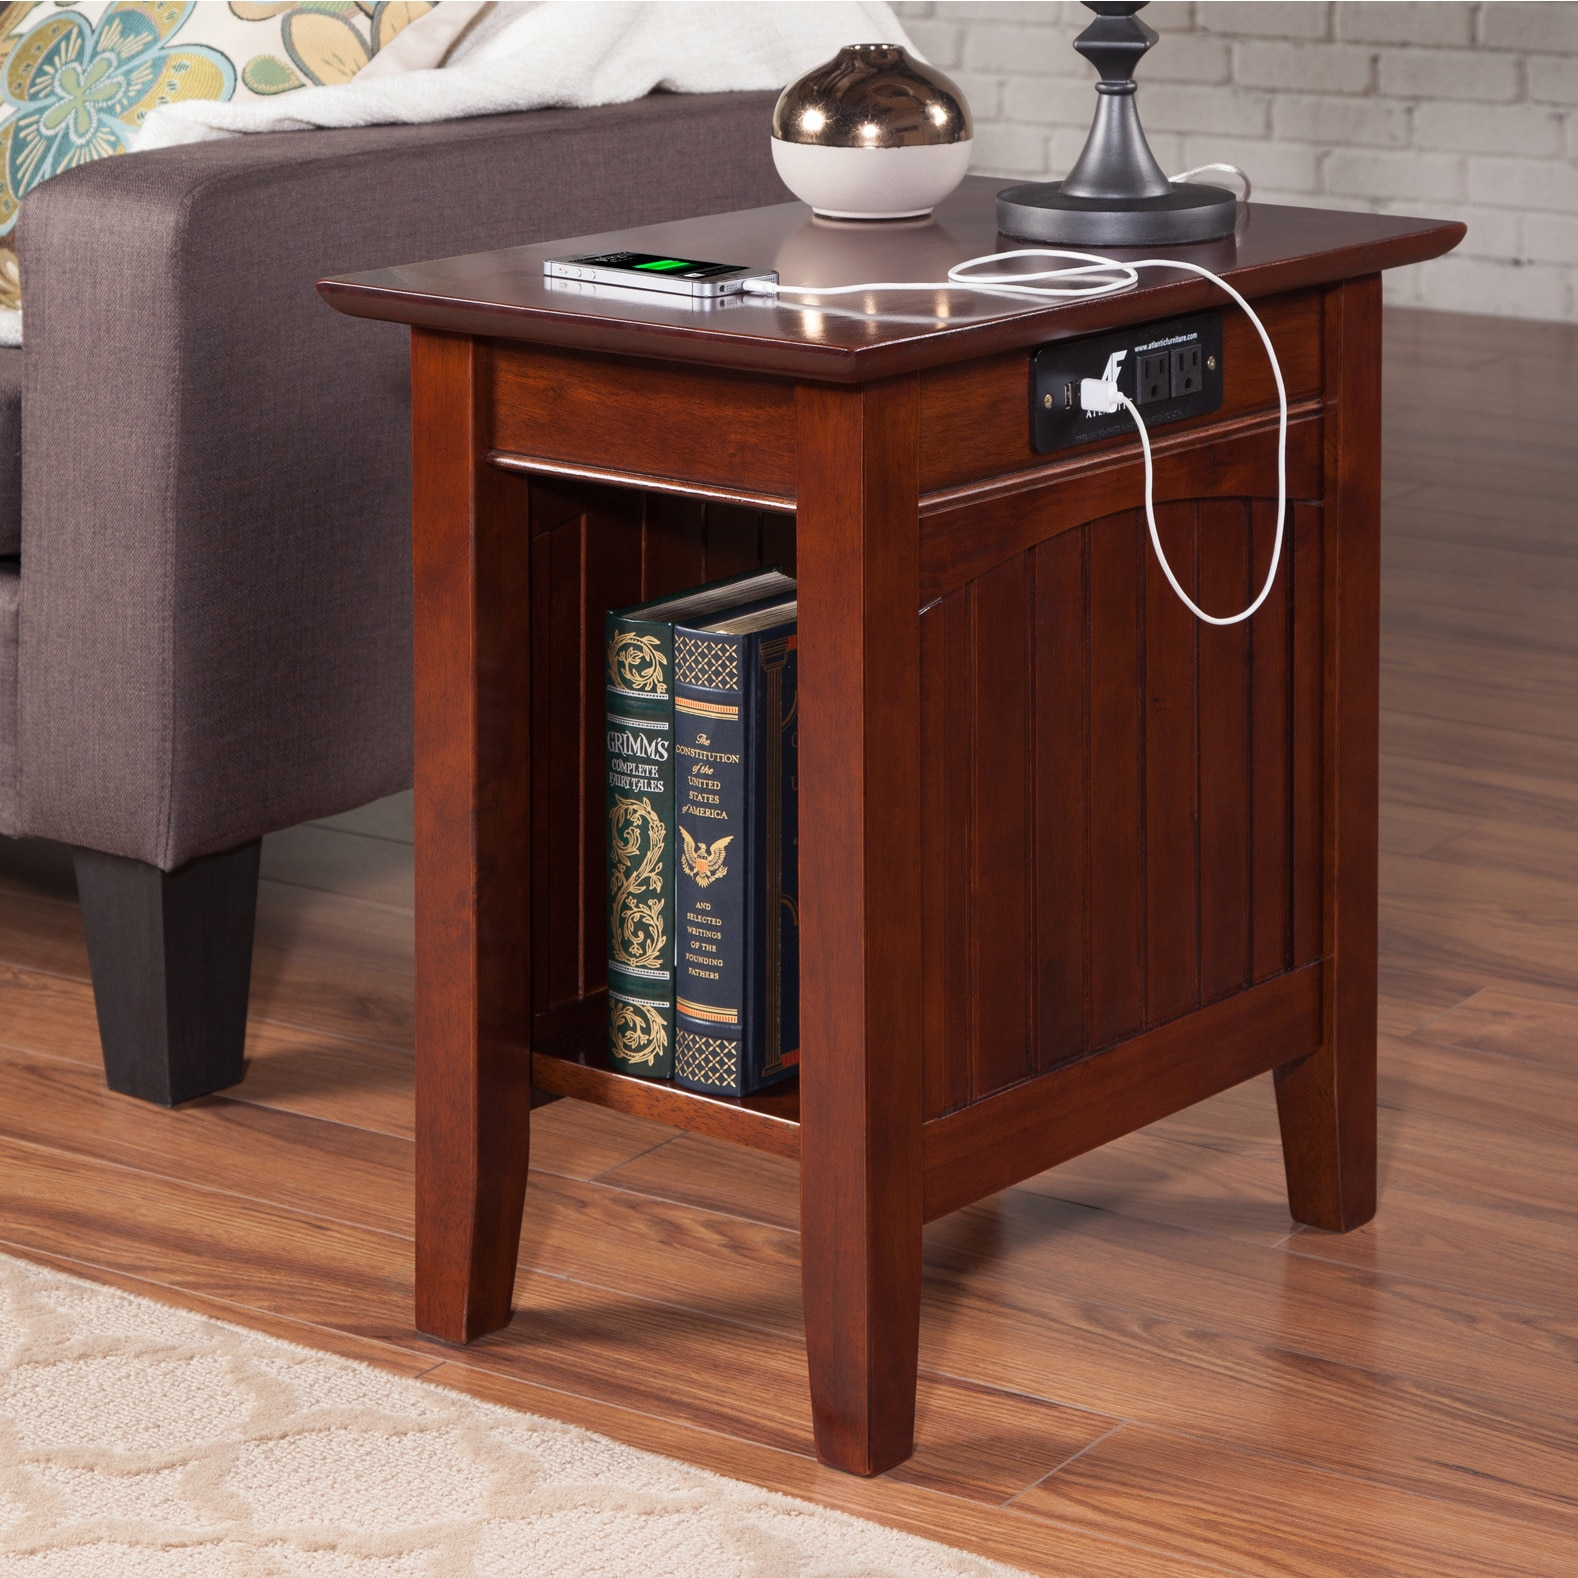 Nantucket Chair Side Table With Charging Station In Walnut